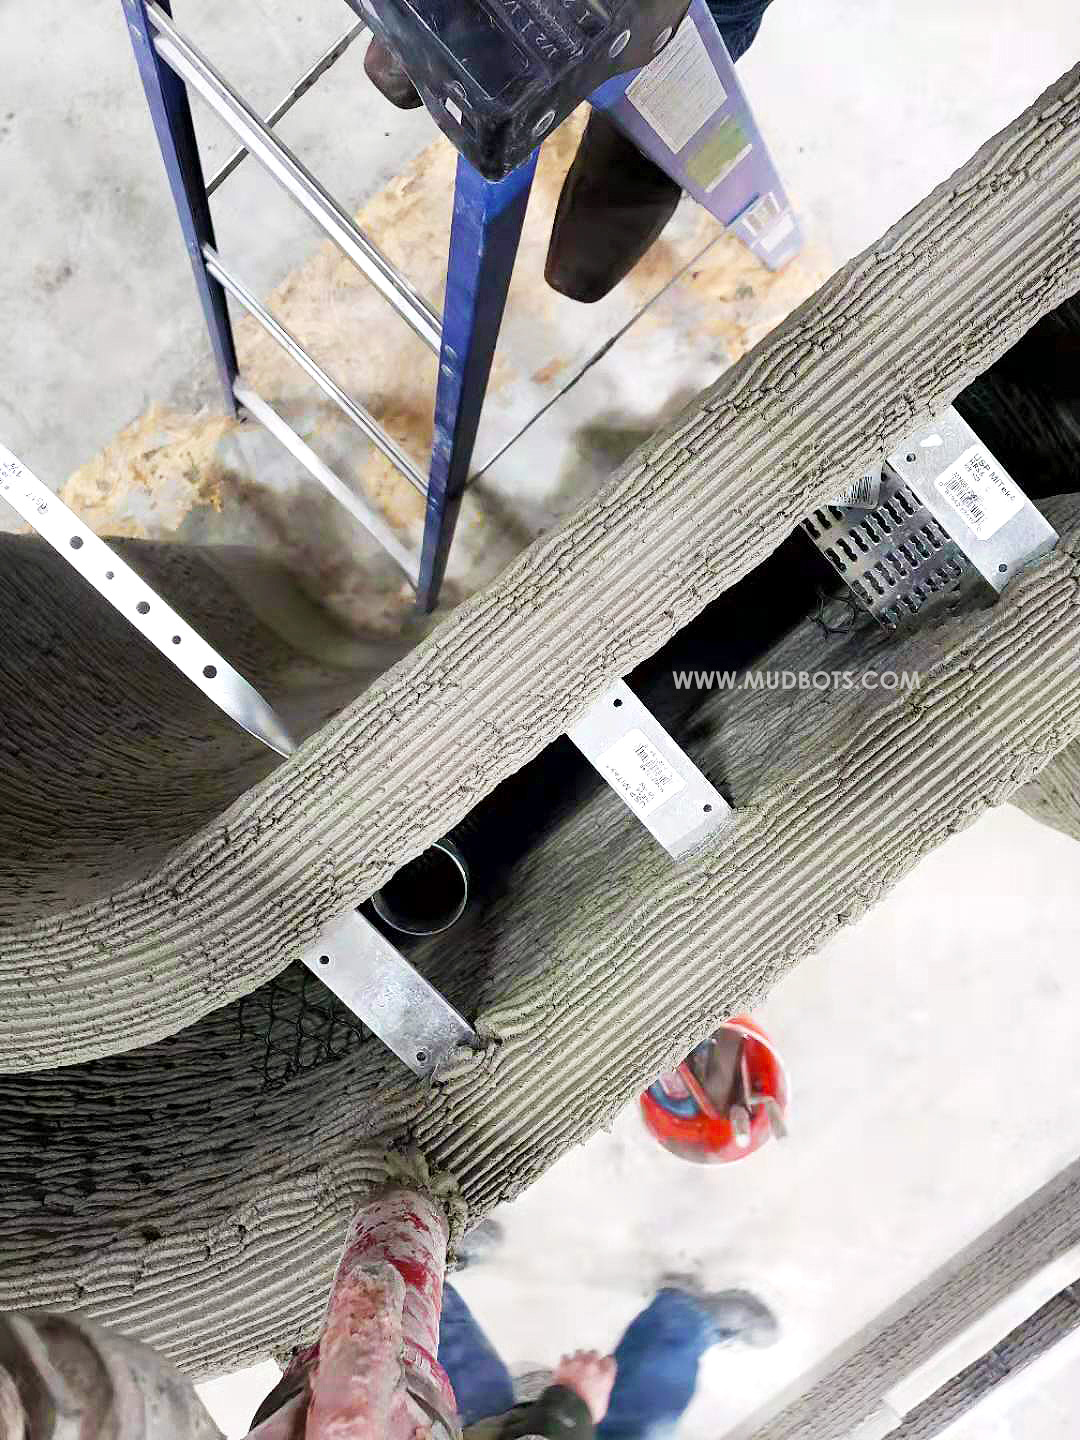 Here is a top view of a 3D printed concrete walls